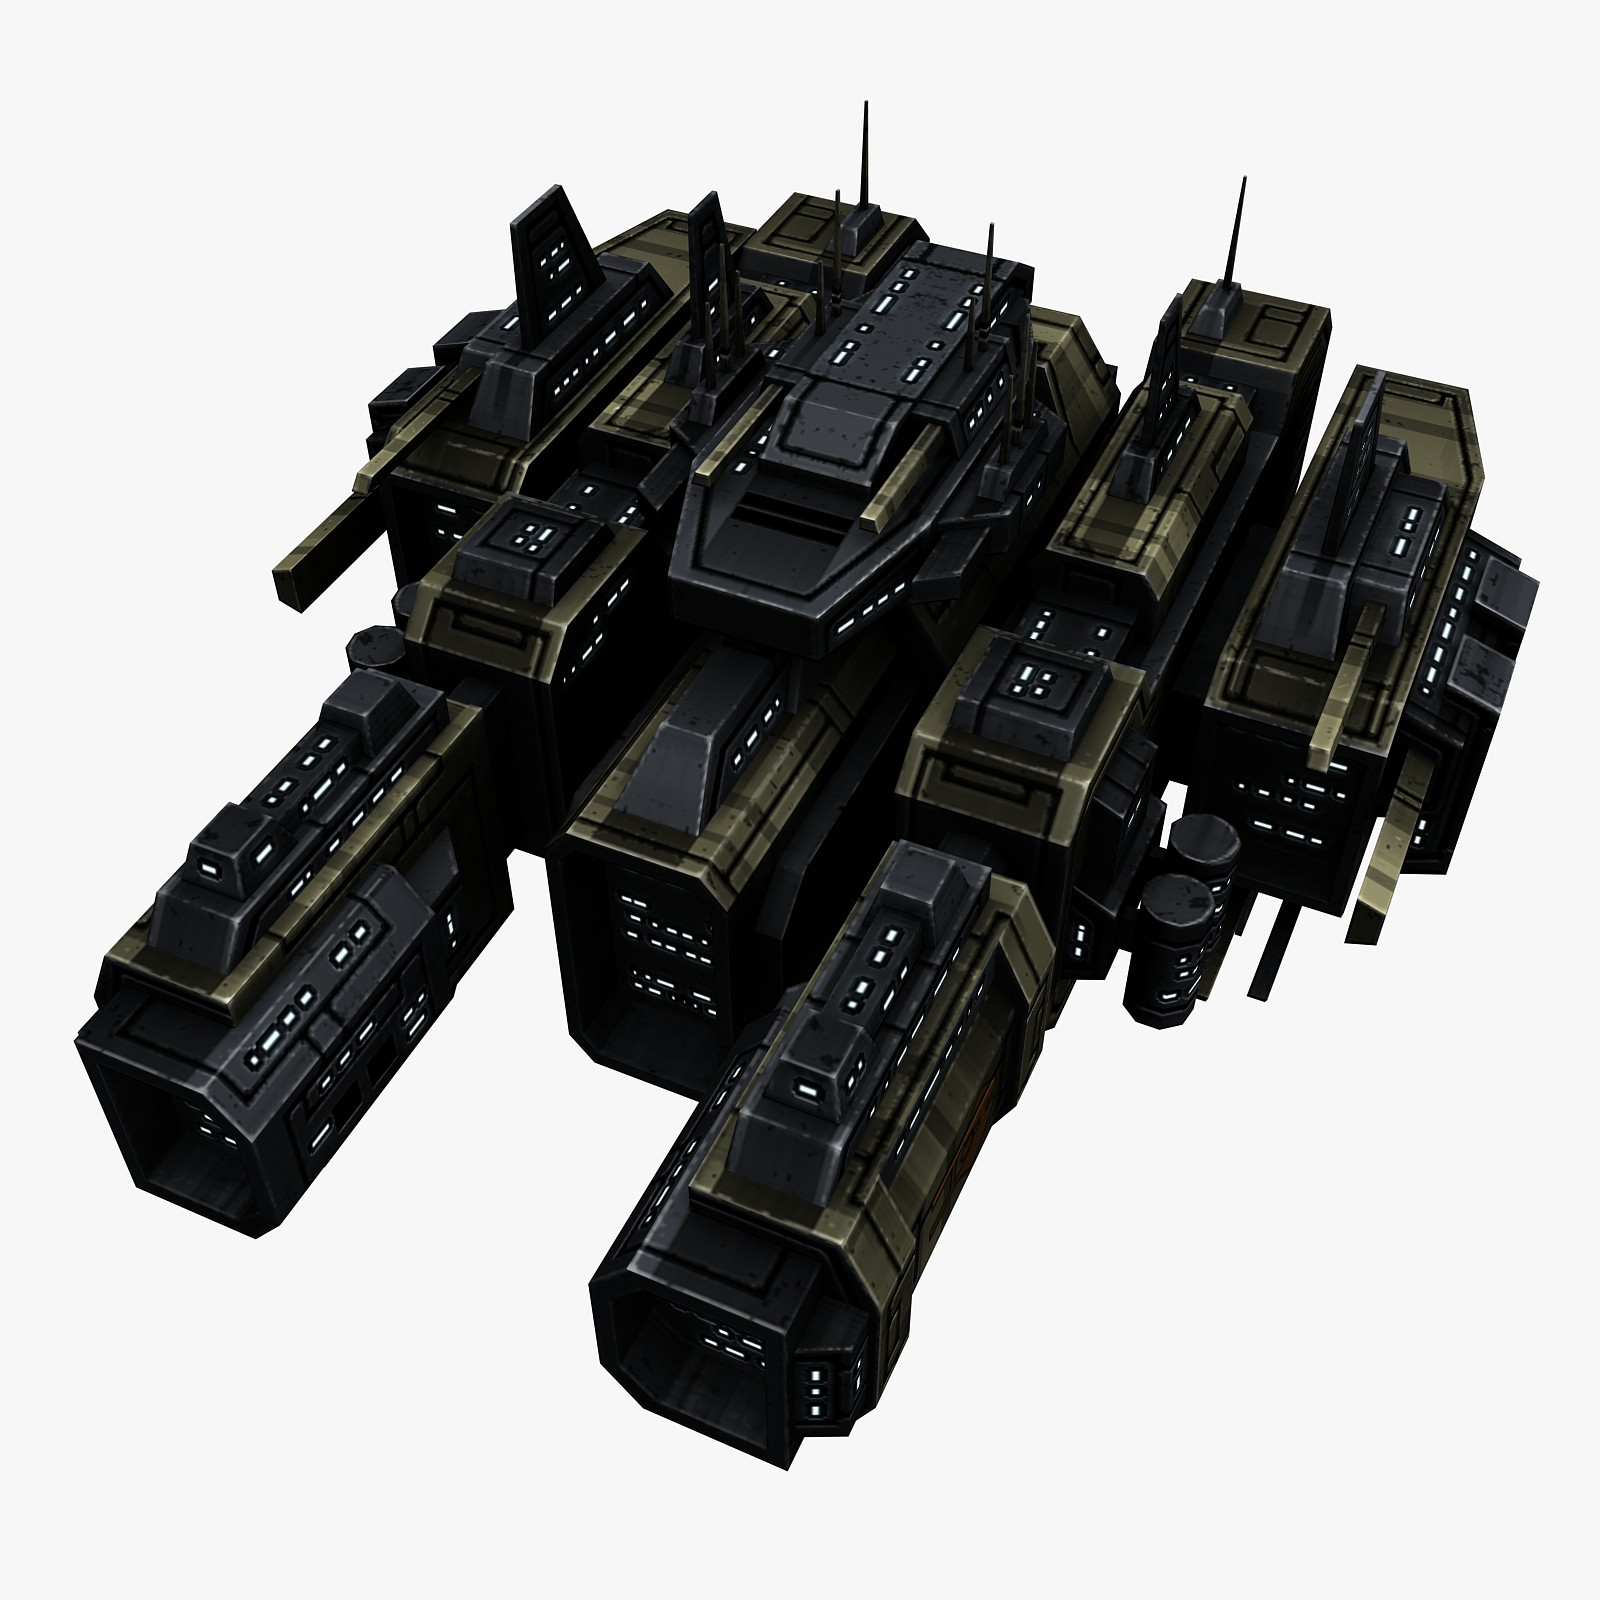 upgraded_civilian_transport_spaceship_4_preview_1.jpg